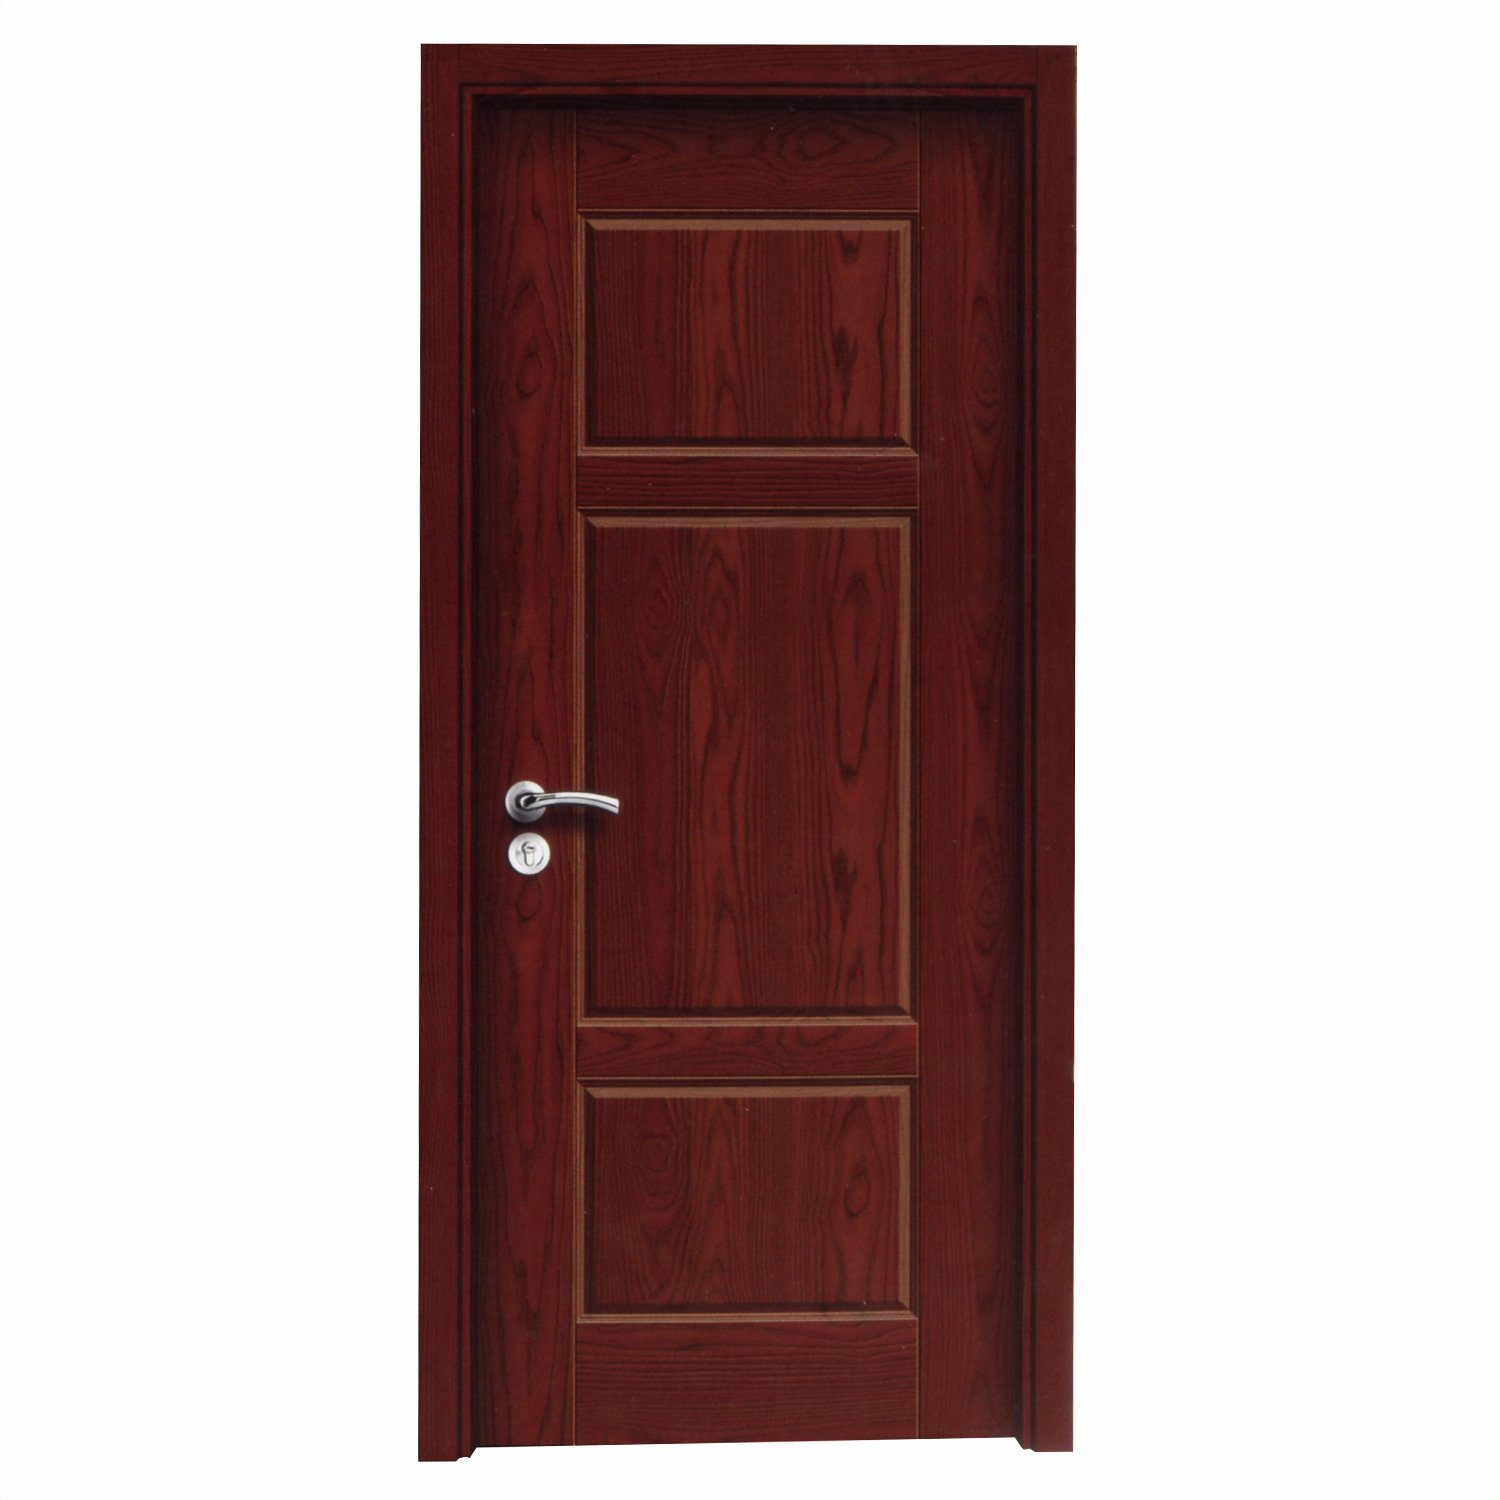 h wooden b doors glazed at lite set pin white diy internal french q american w veneer clear interior door oak departments